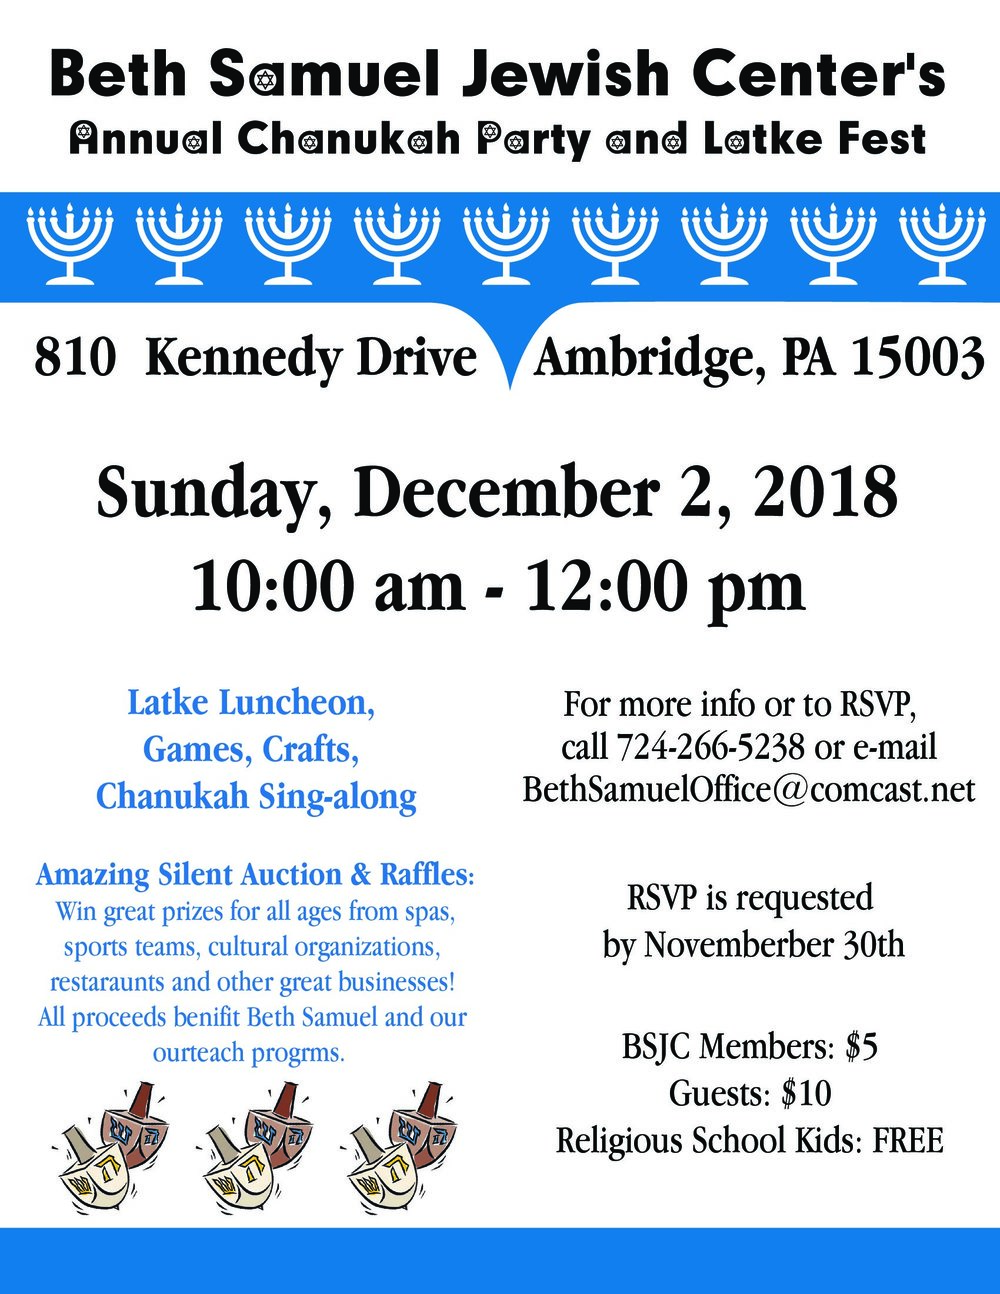 2018_Chanukah_Party_Flyer.jpg